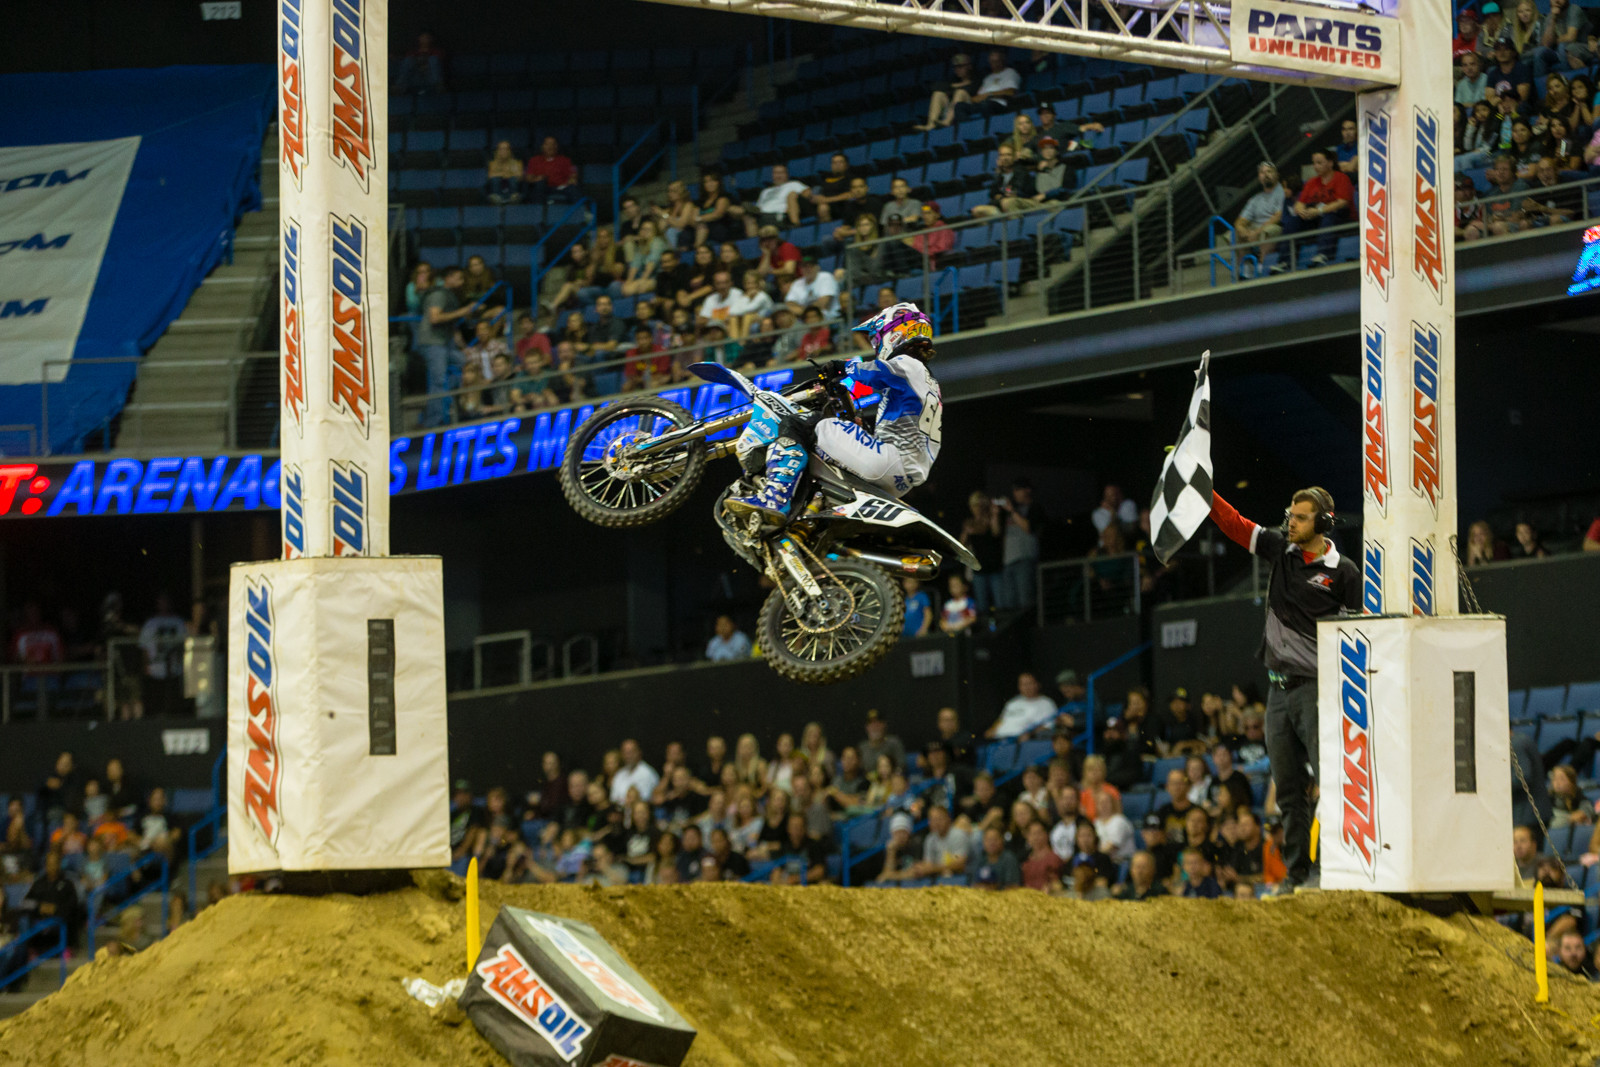 Stone Edler - Photo Gallery: Ontario Arenacross - Saturday Night - Motocross Pictures - Vital MX